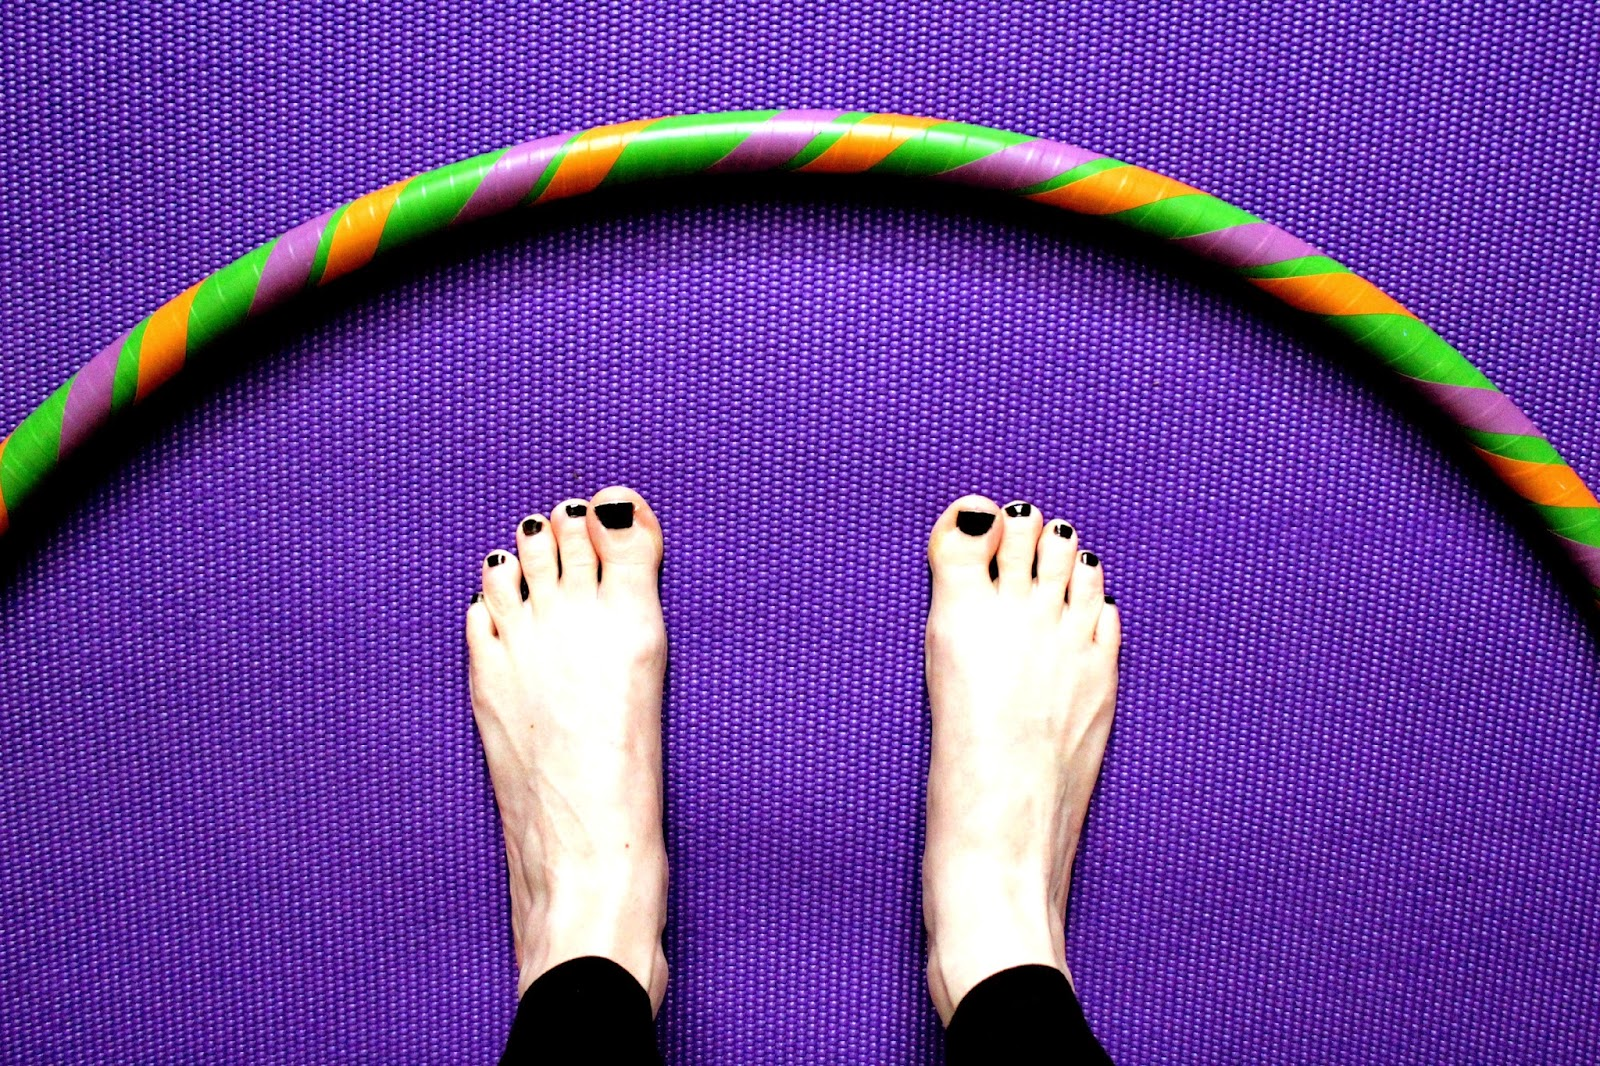 Project 365 day 68 - Yoga & hoop // 76sunflowers